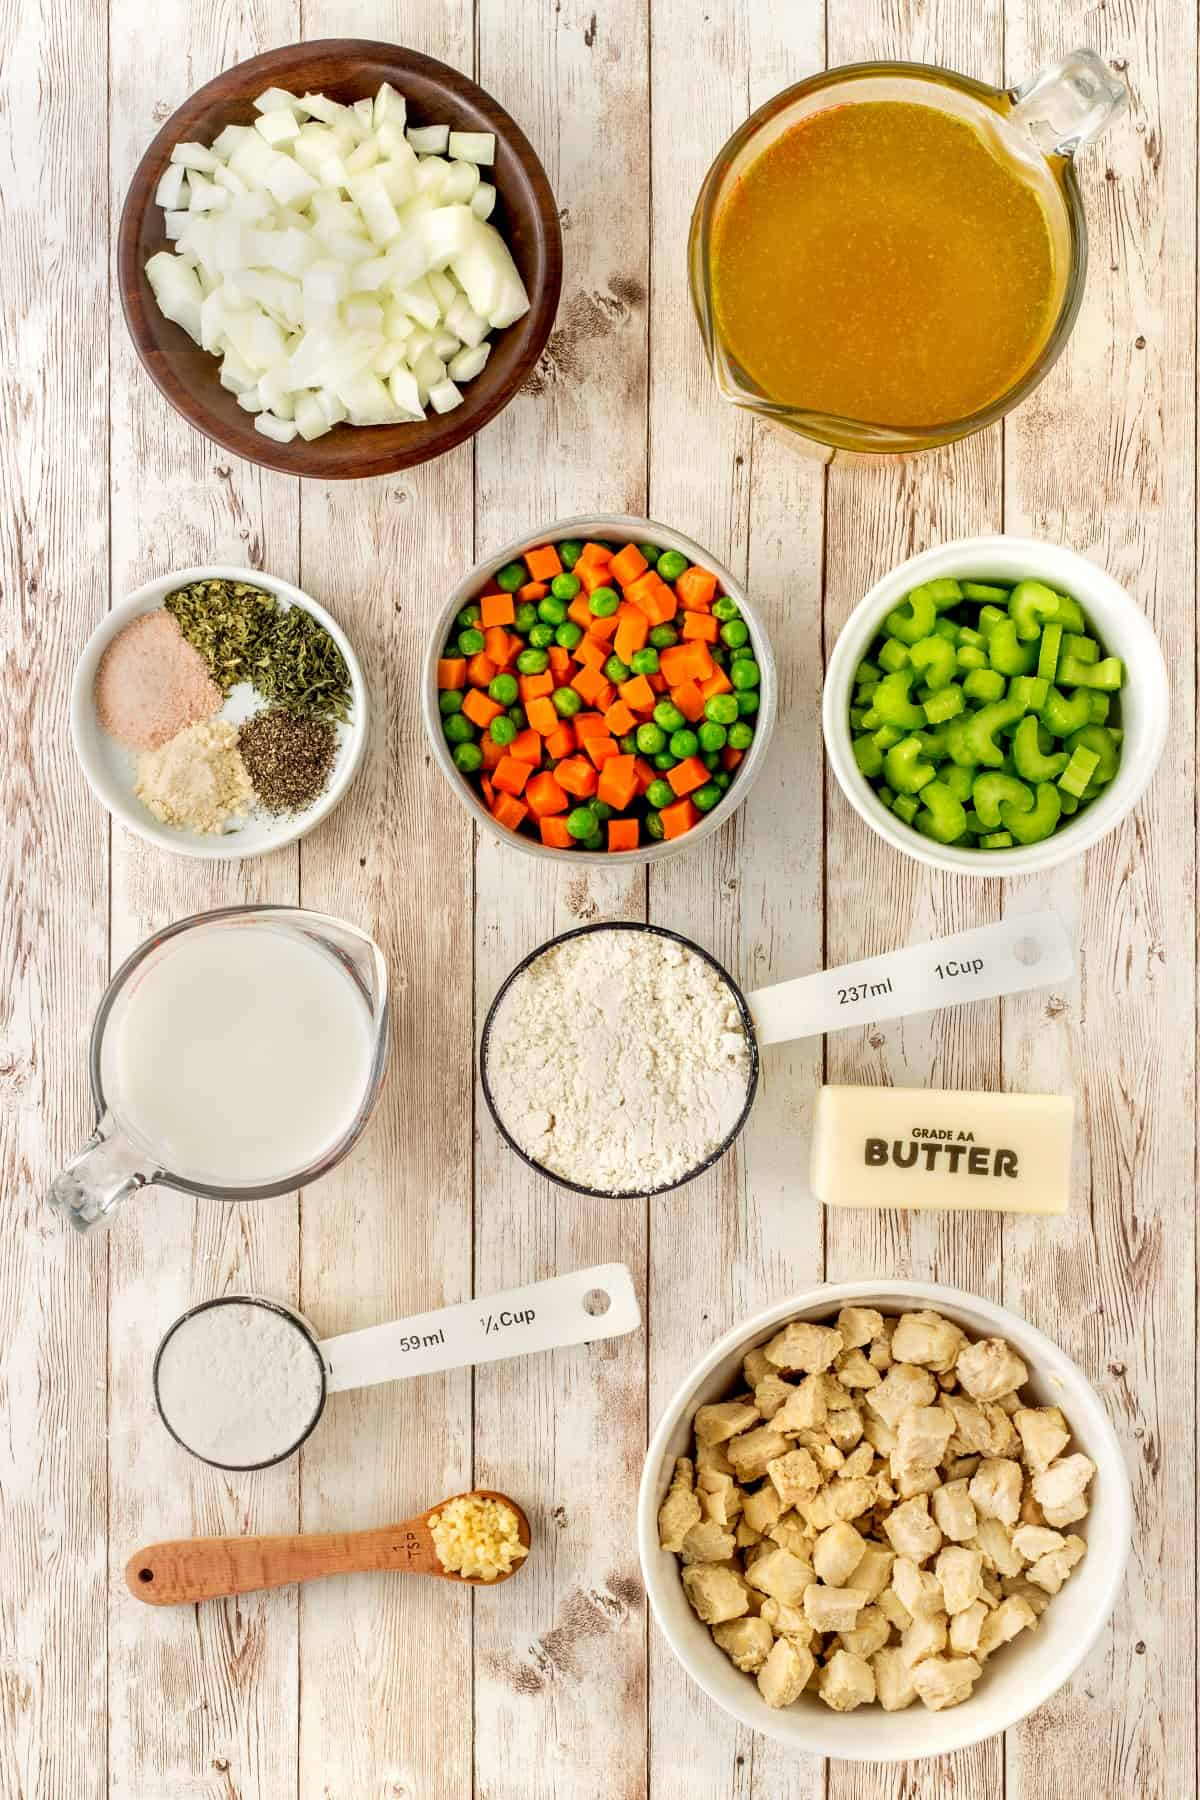 Ingredients for Chicken and Dumplings